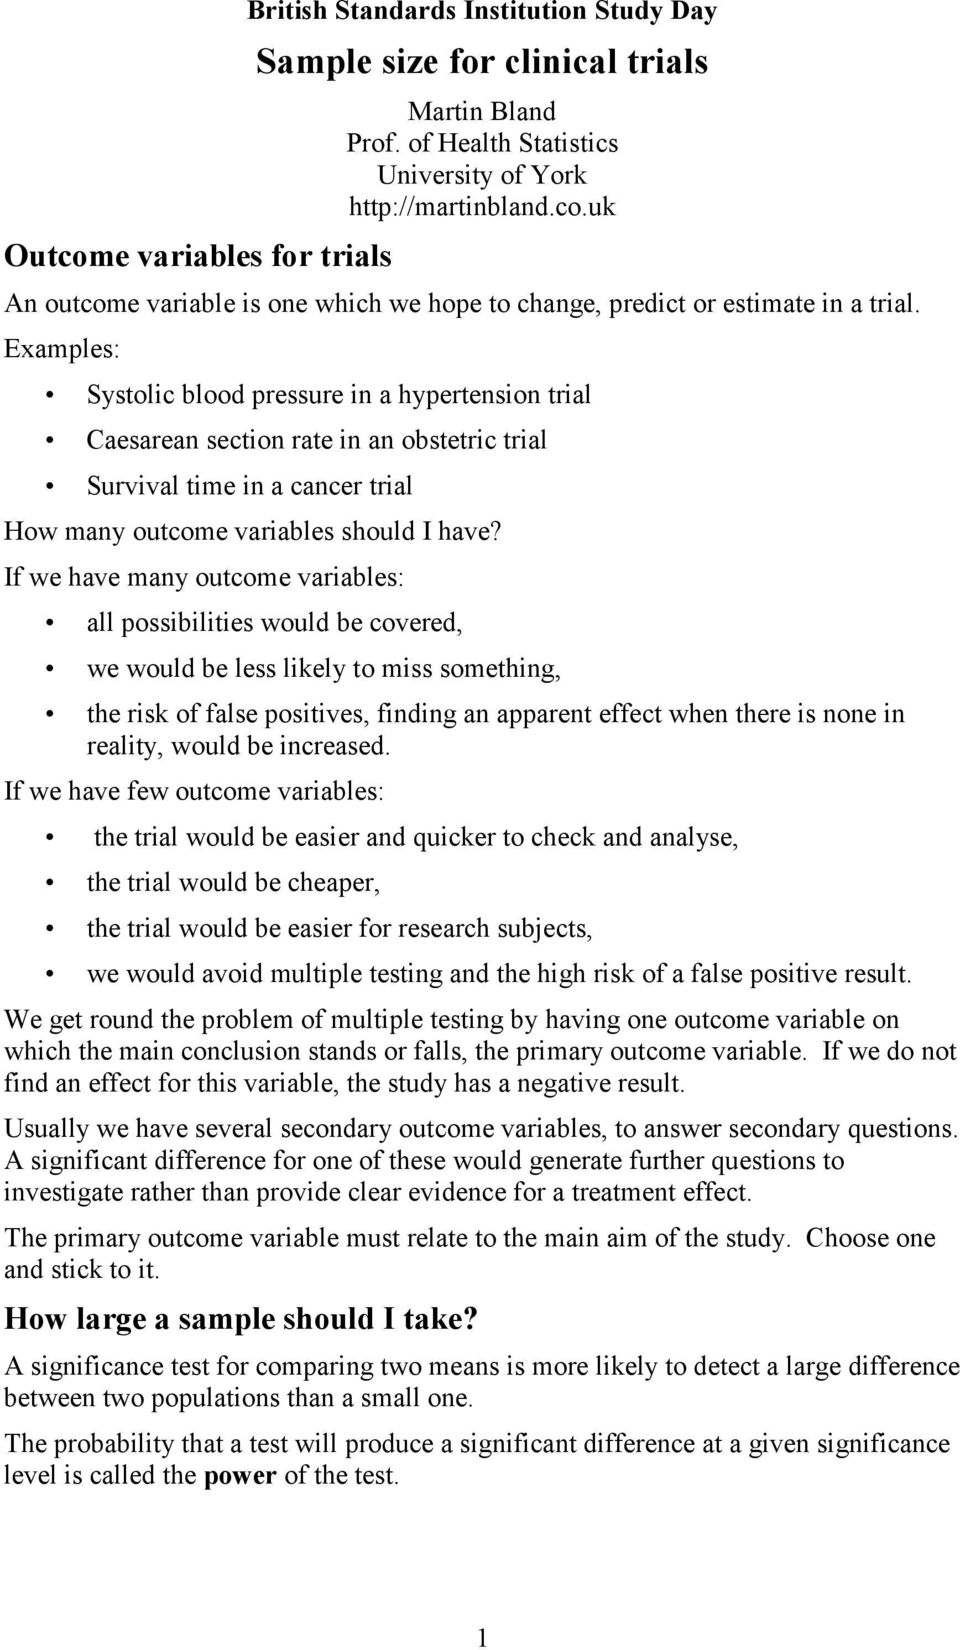 clinical outcome variables scale pdf